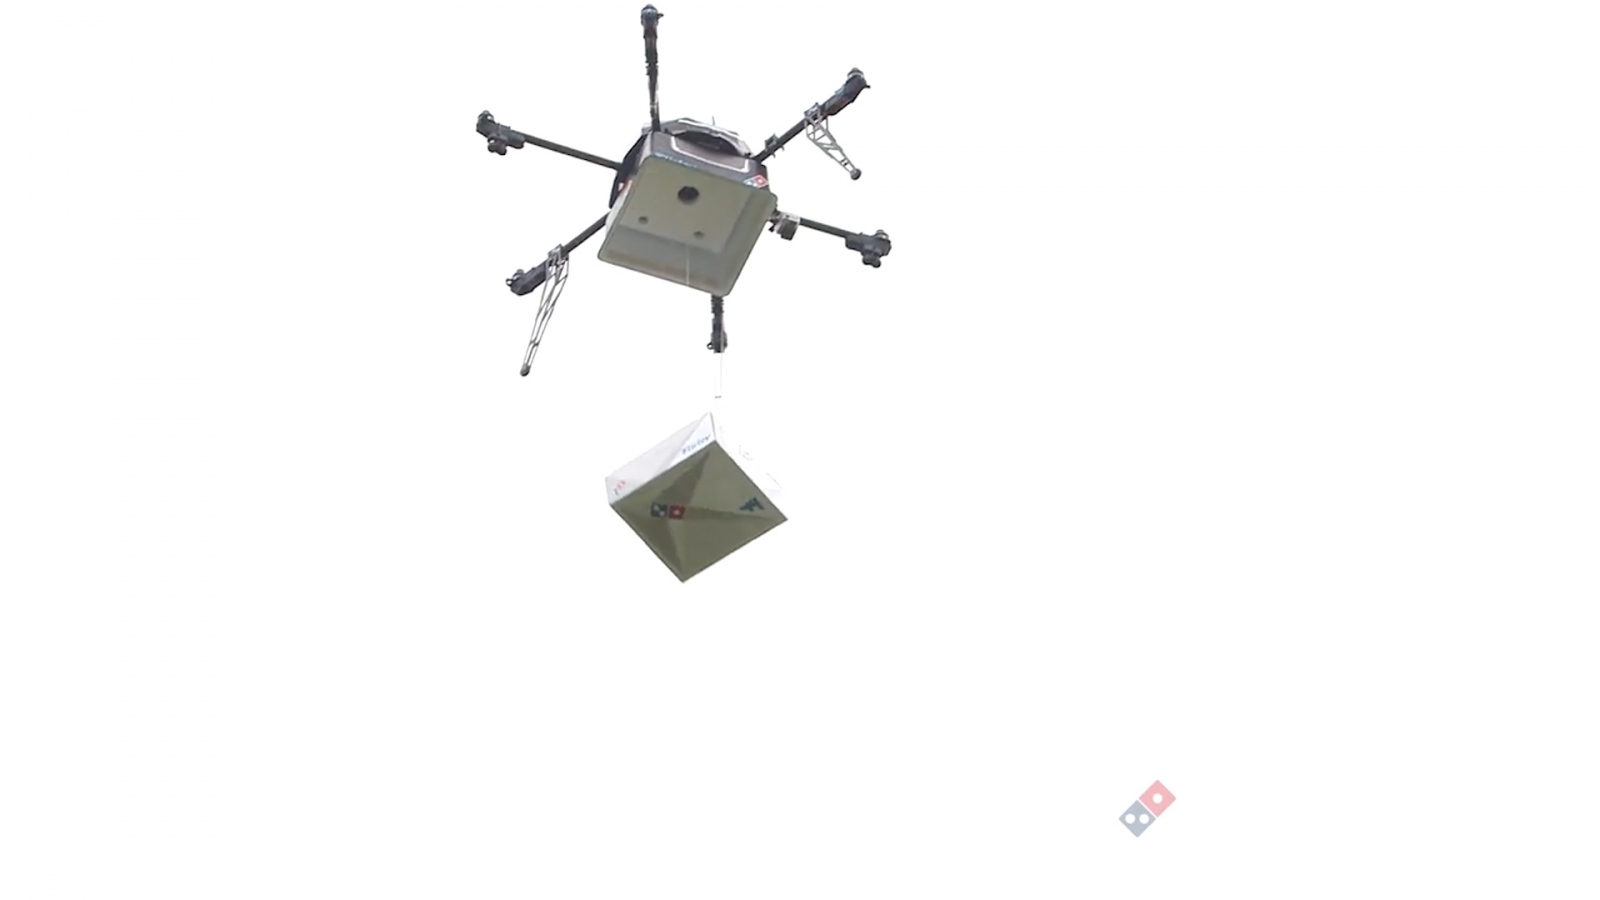 Domino's aims for drone delivery service